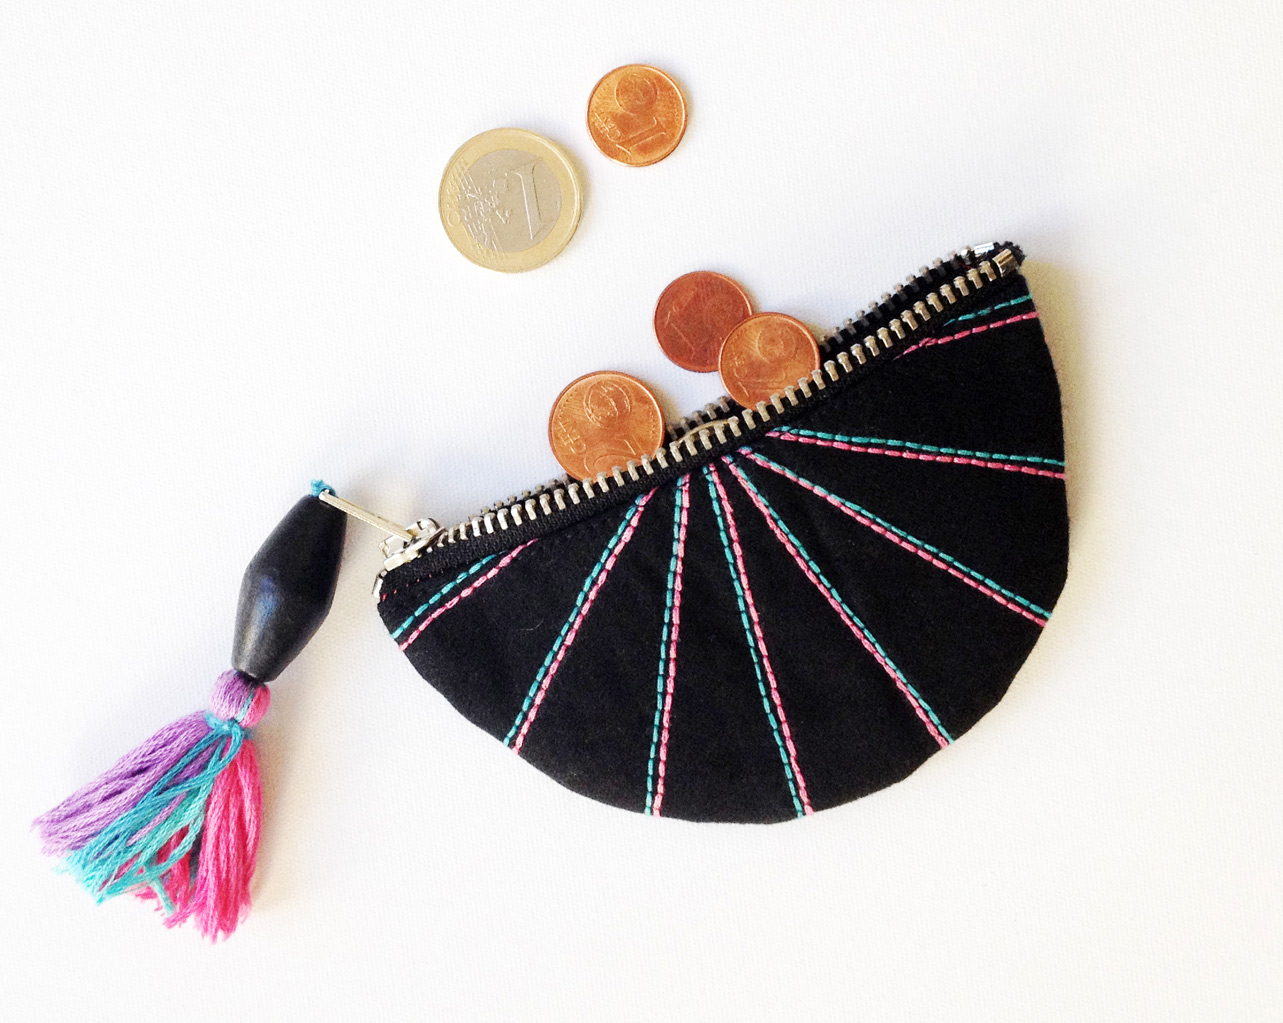 DIY Fan Coin Purse Tutorial